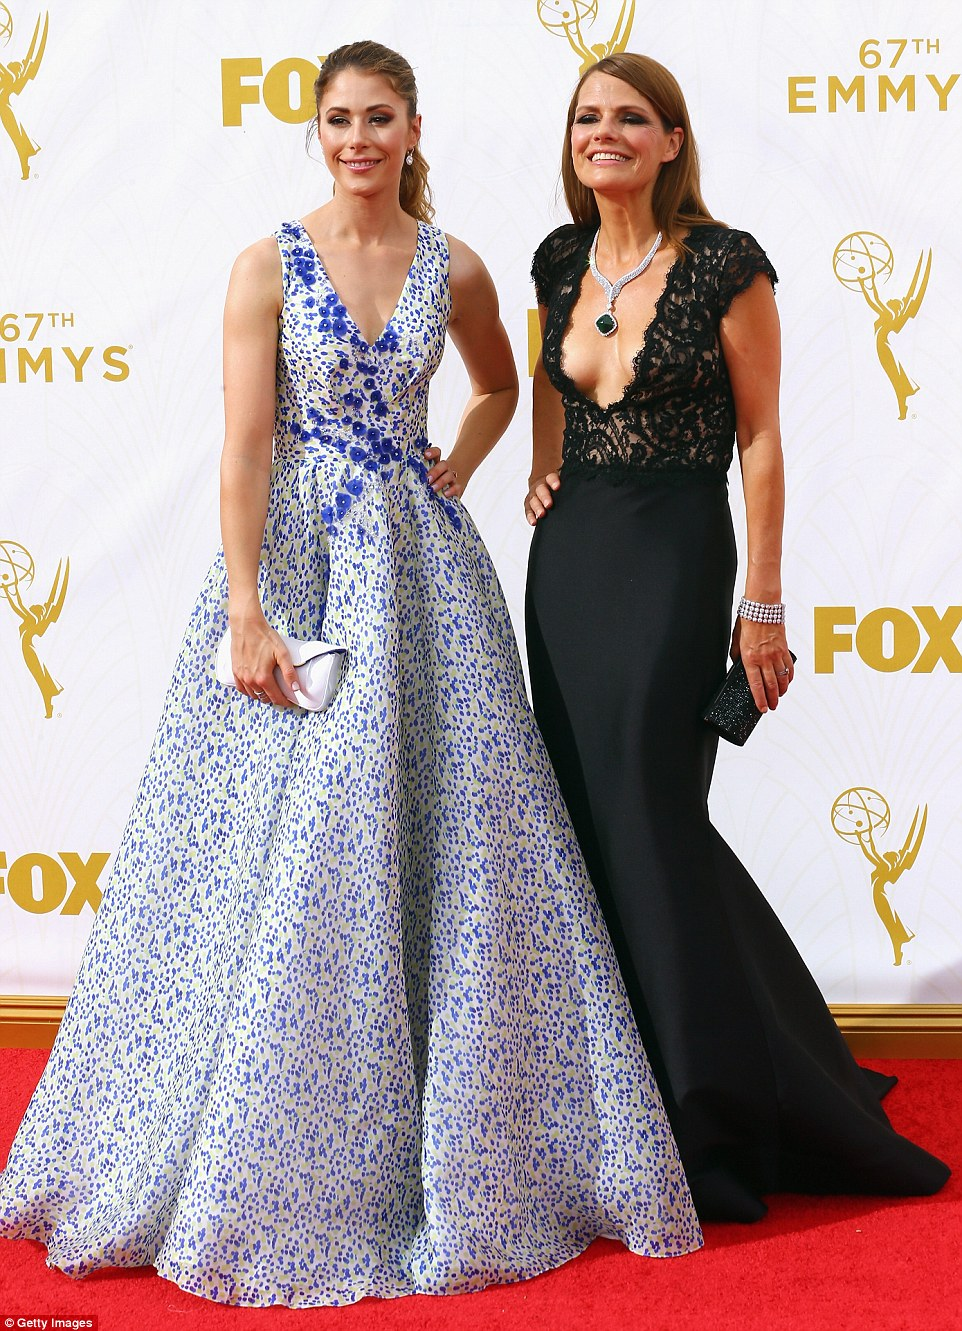 Taking the plunge! Amanda Crew wore a summery and colourful gown while Suzanne Cryer wore a very low-cut black dress